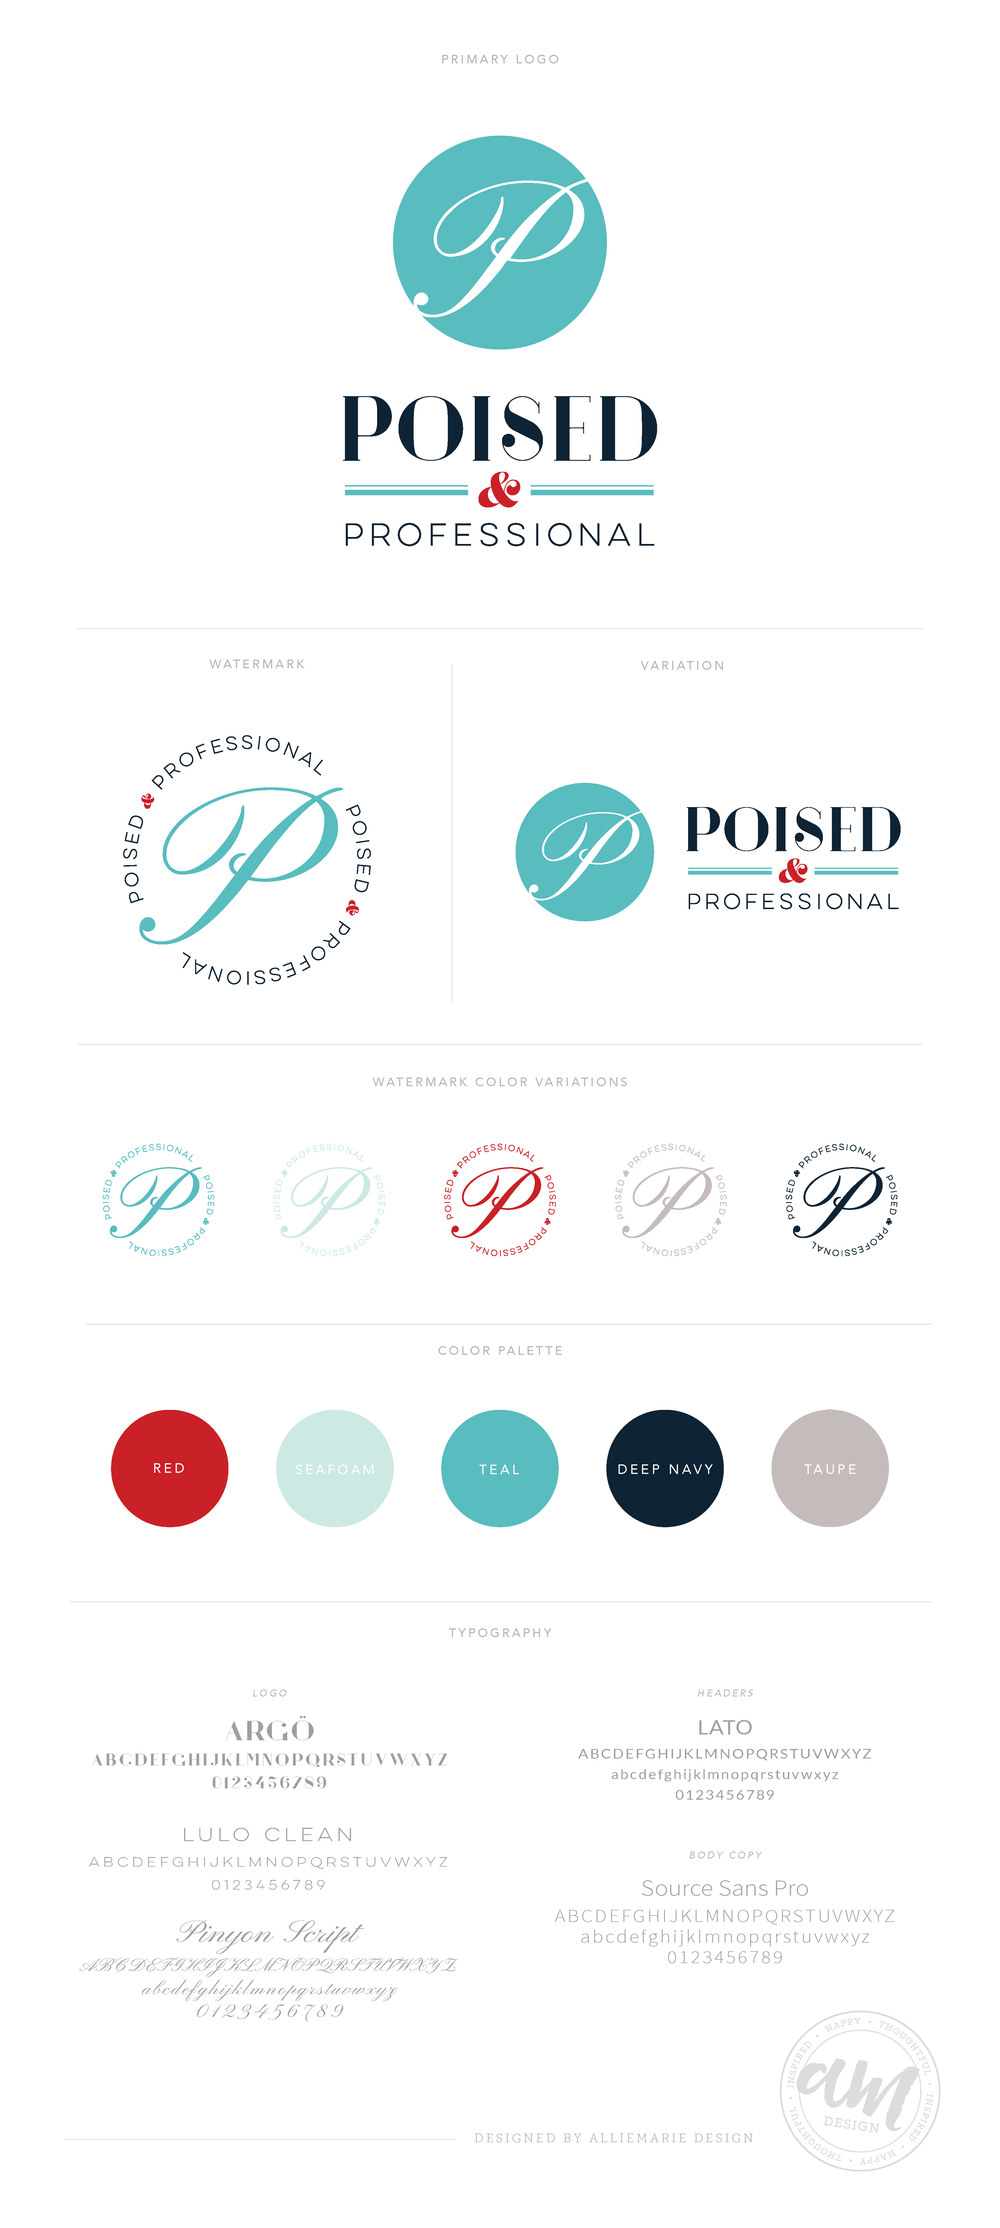 Poised & Professional Branding Board